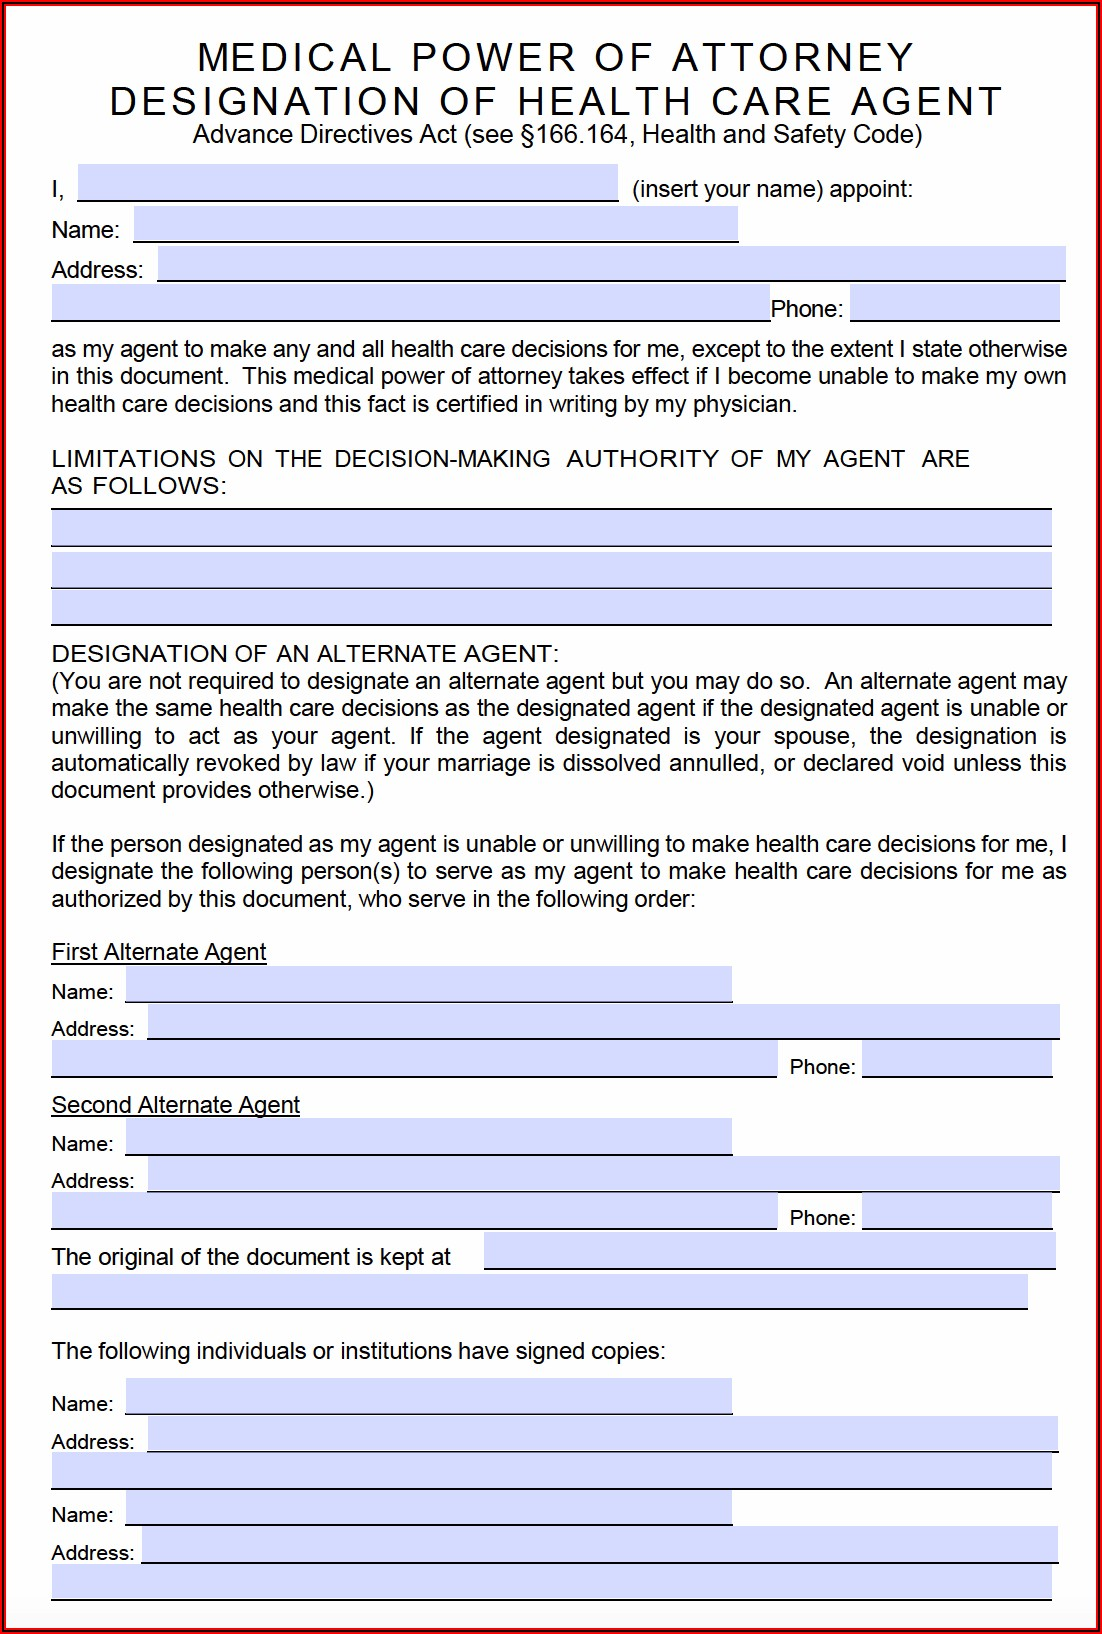 Where Can I Get A Blank Medical Power Of Attorney Form